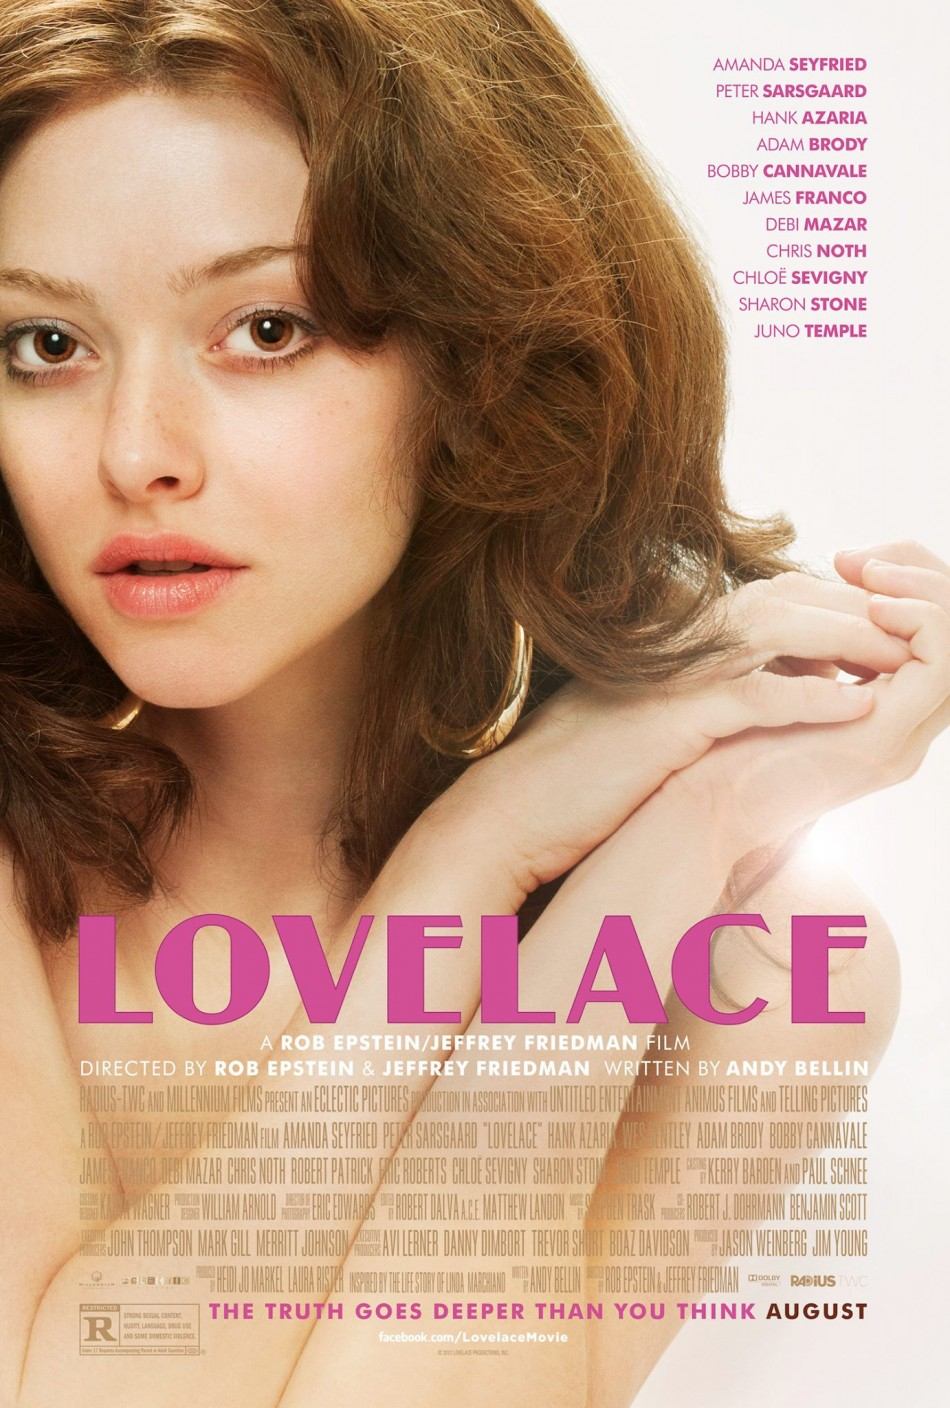 linda lovelace film